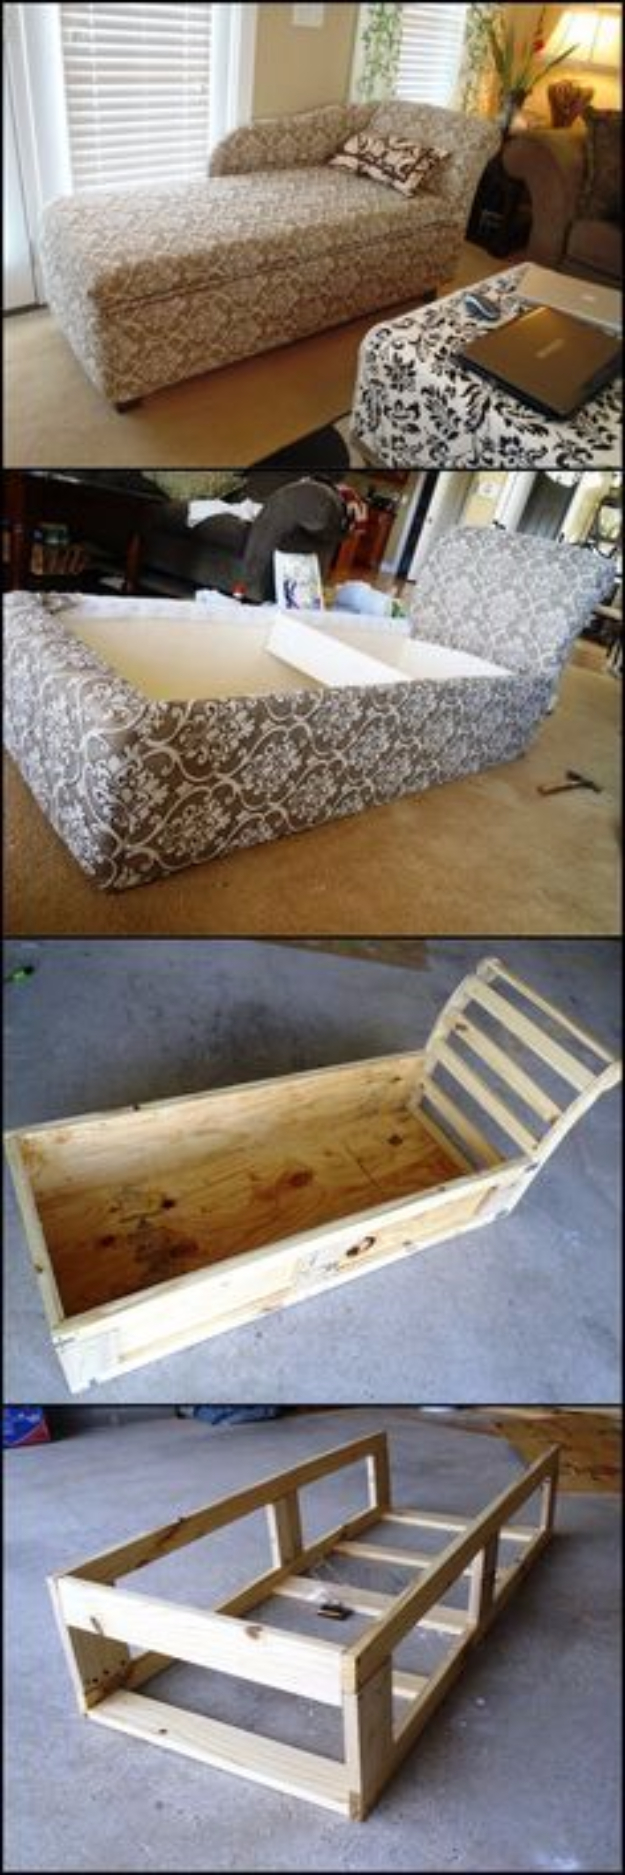 DIY Sofas and Couches - DIY Chaise Lounge With Storage - Easy and Creative Furniture and Home Decor Ideas - Make Your Own Sofa or Couch on A Budget - Makeover Your Current Couch With Slipcovers, Painting and More. Step by Step Tutorials and Instructions #diy #furniture